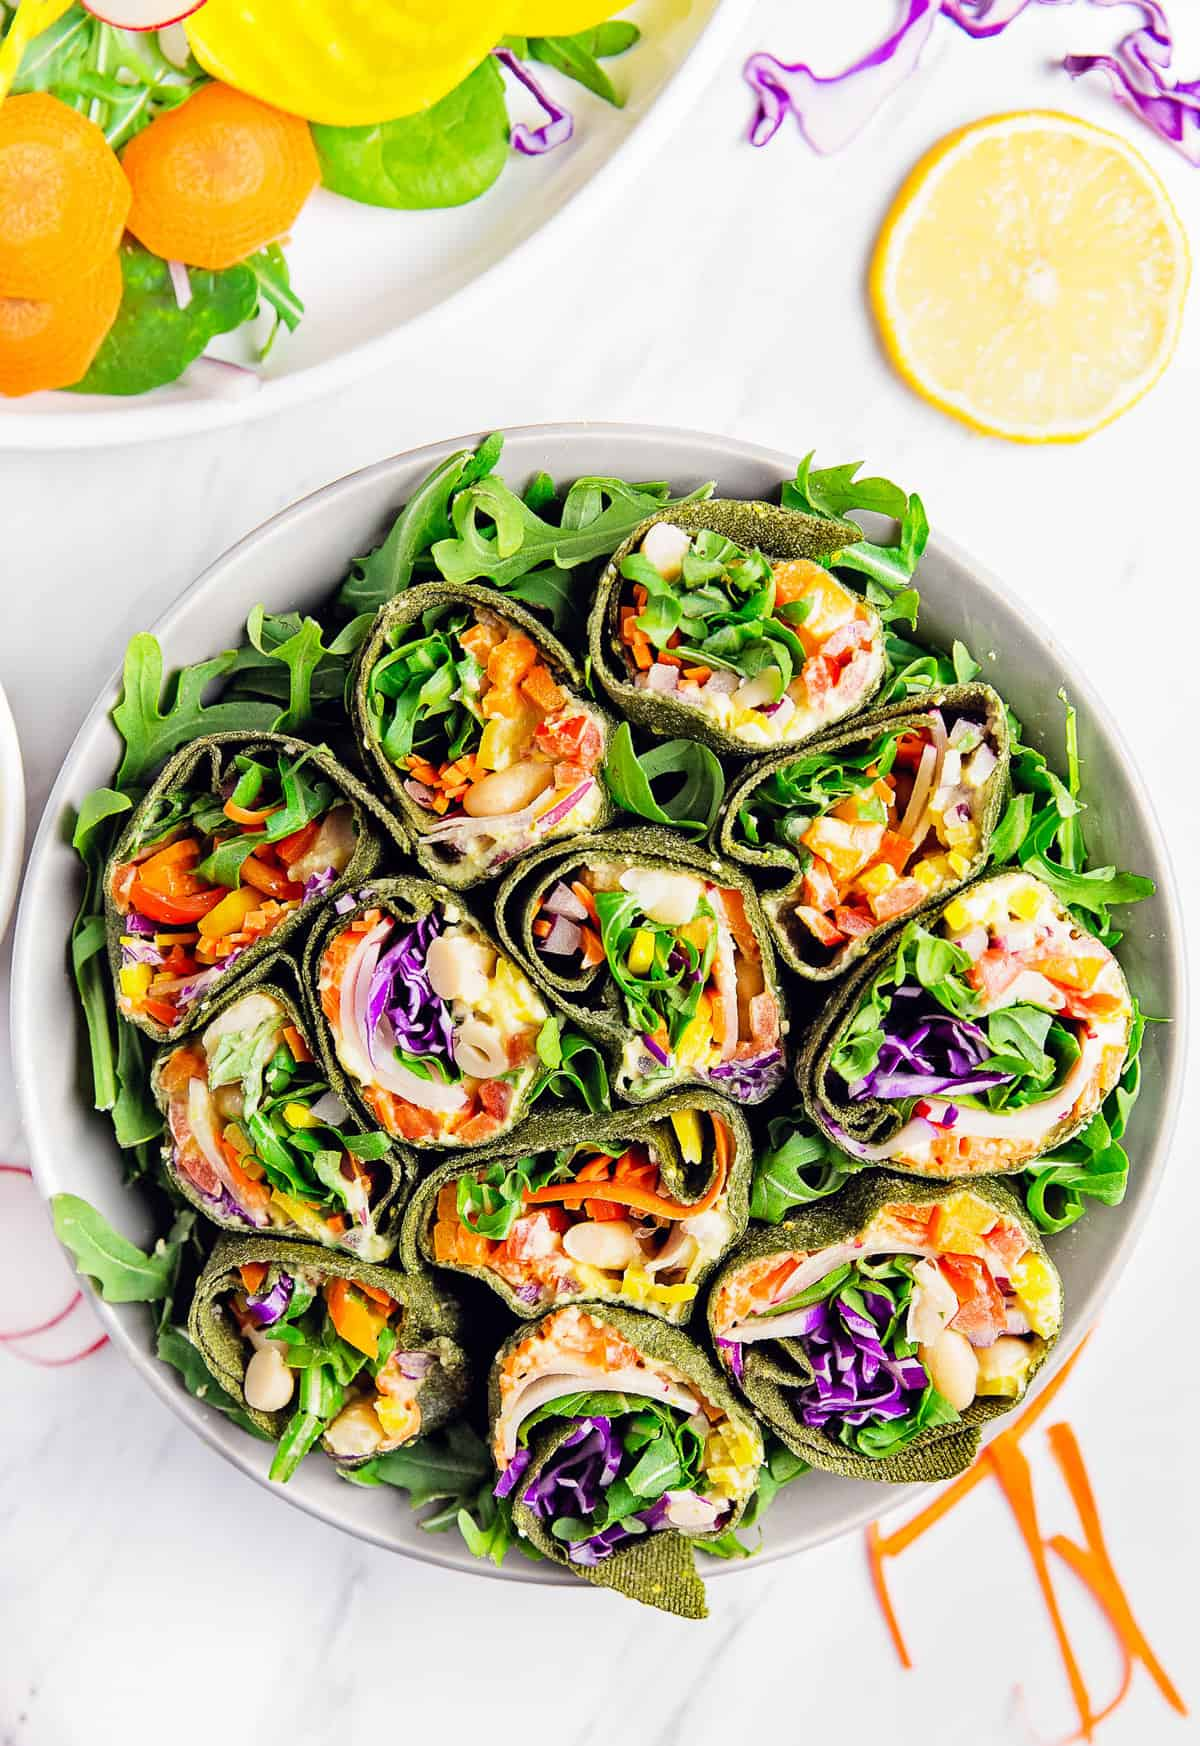 Veggie Wrap with Pickled Hummus, vegan, vegetarian, whole food plant based, gluten free, recipe, wfpb, healthy, oil free, no refined sugar, no oil, refined sugar free, dairy free, dinner party, entertaining